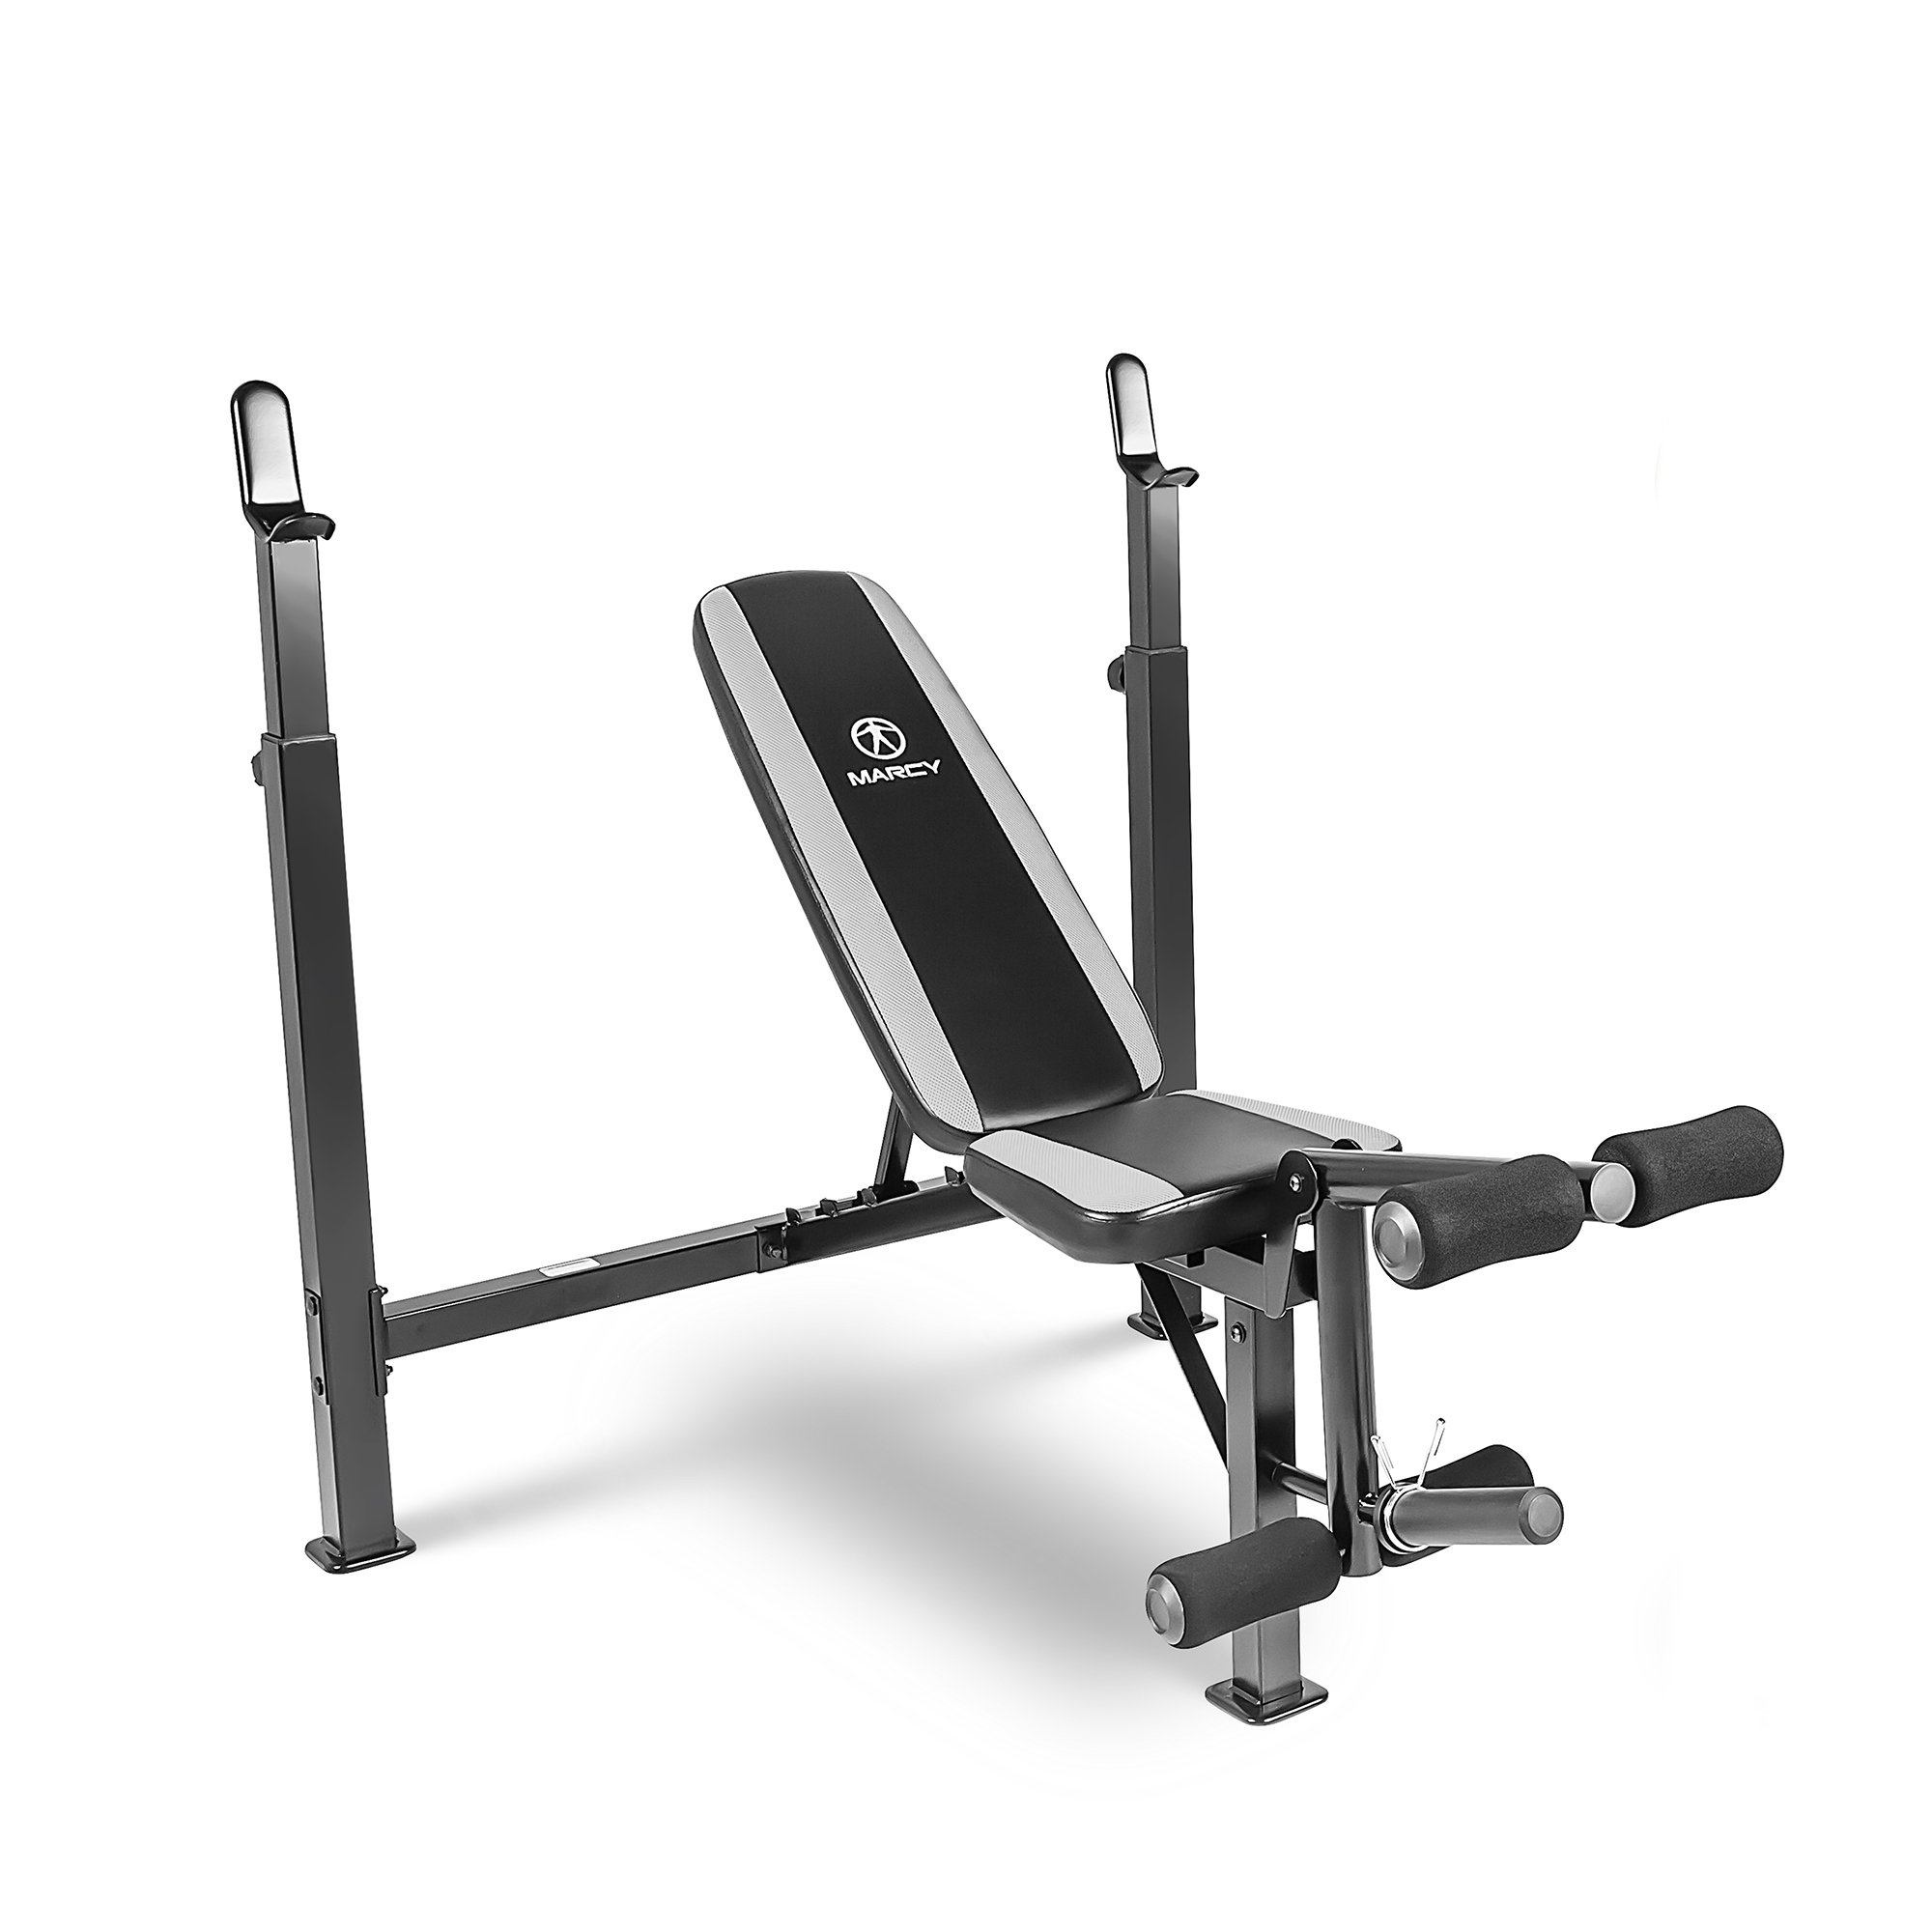 Marcy Fitness Olympic Multipurpose Weightlifting Workout Bench, Black | MWB-4491 by Marcy Fitness